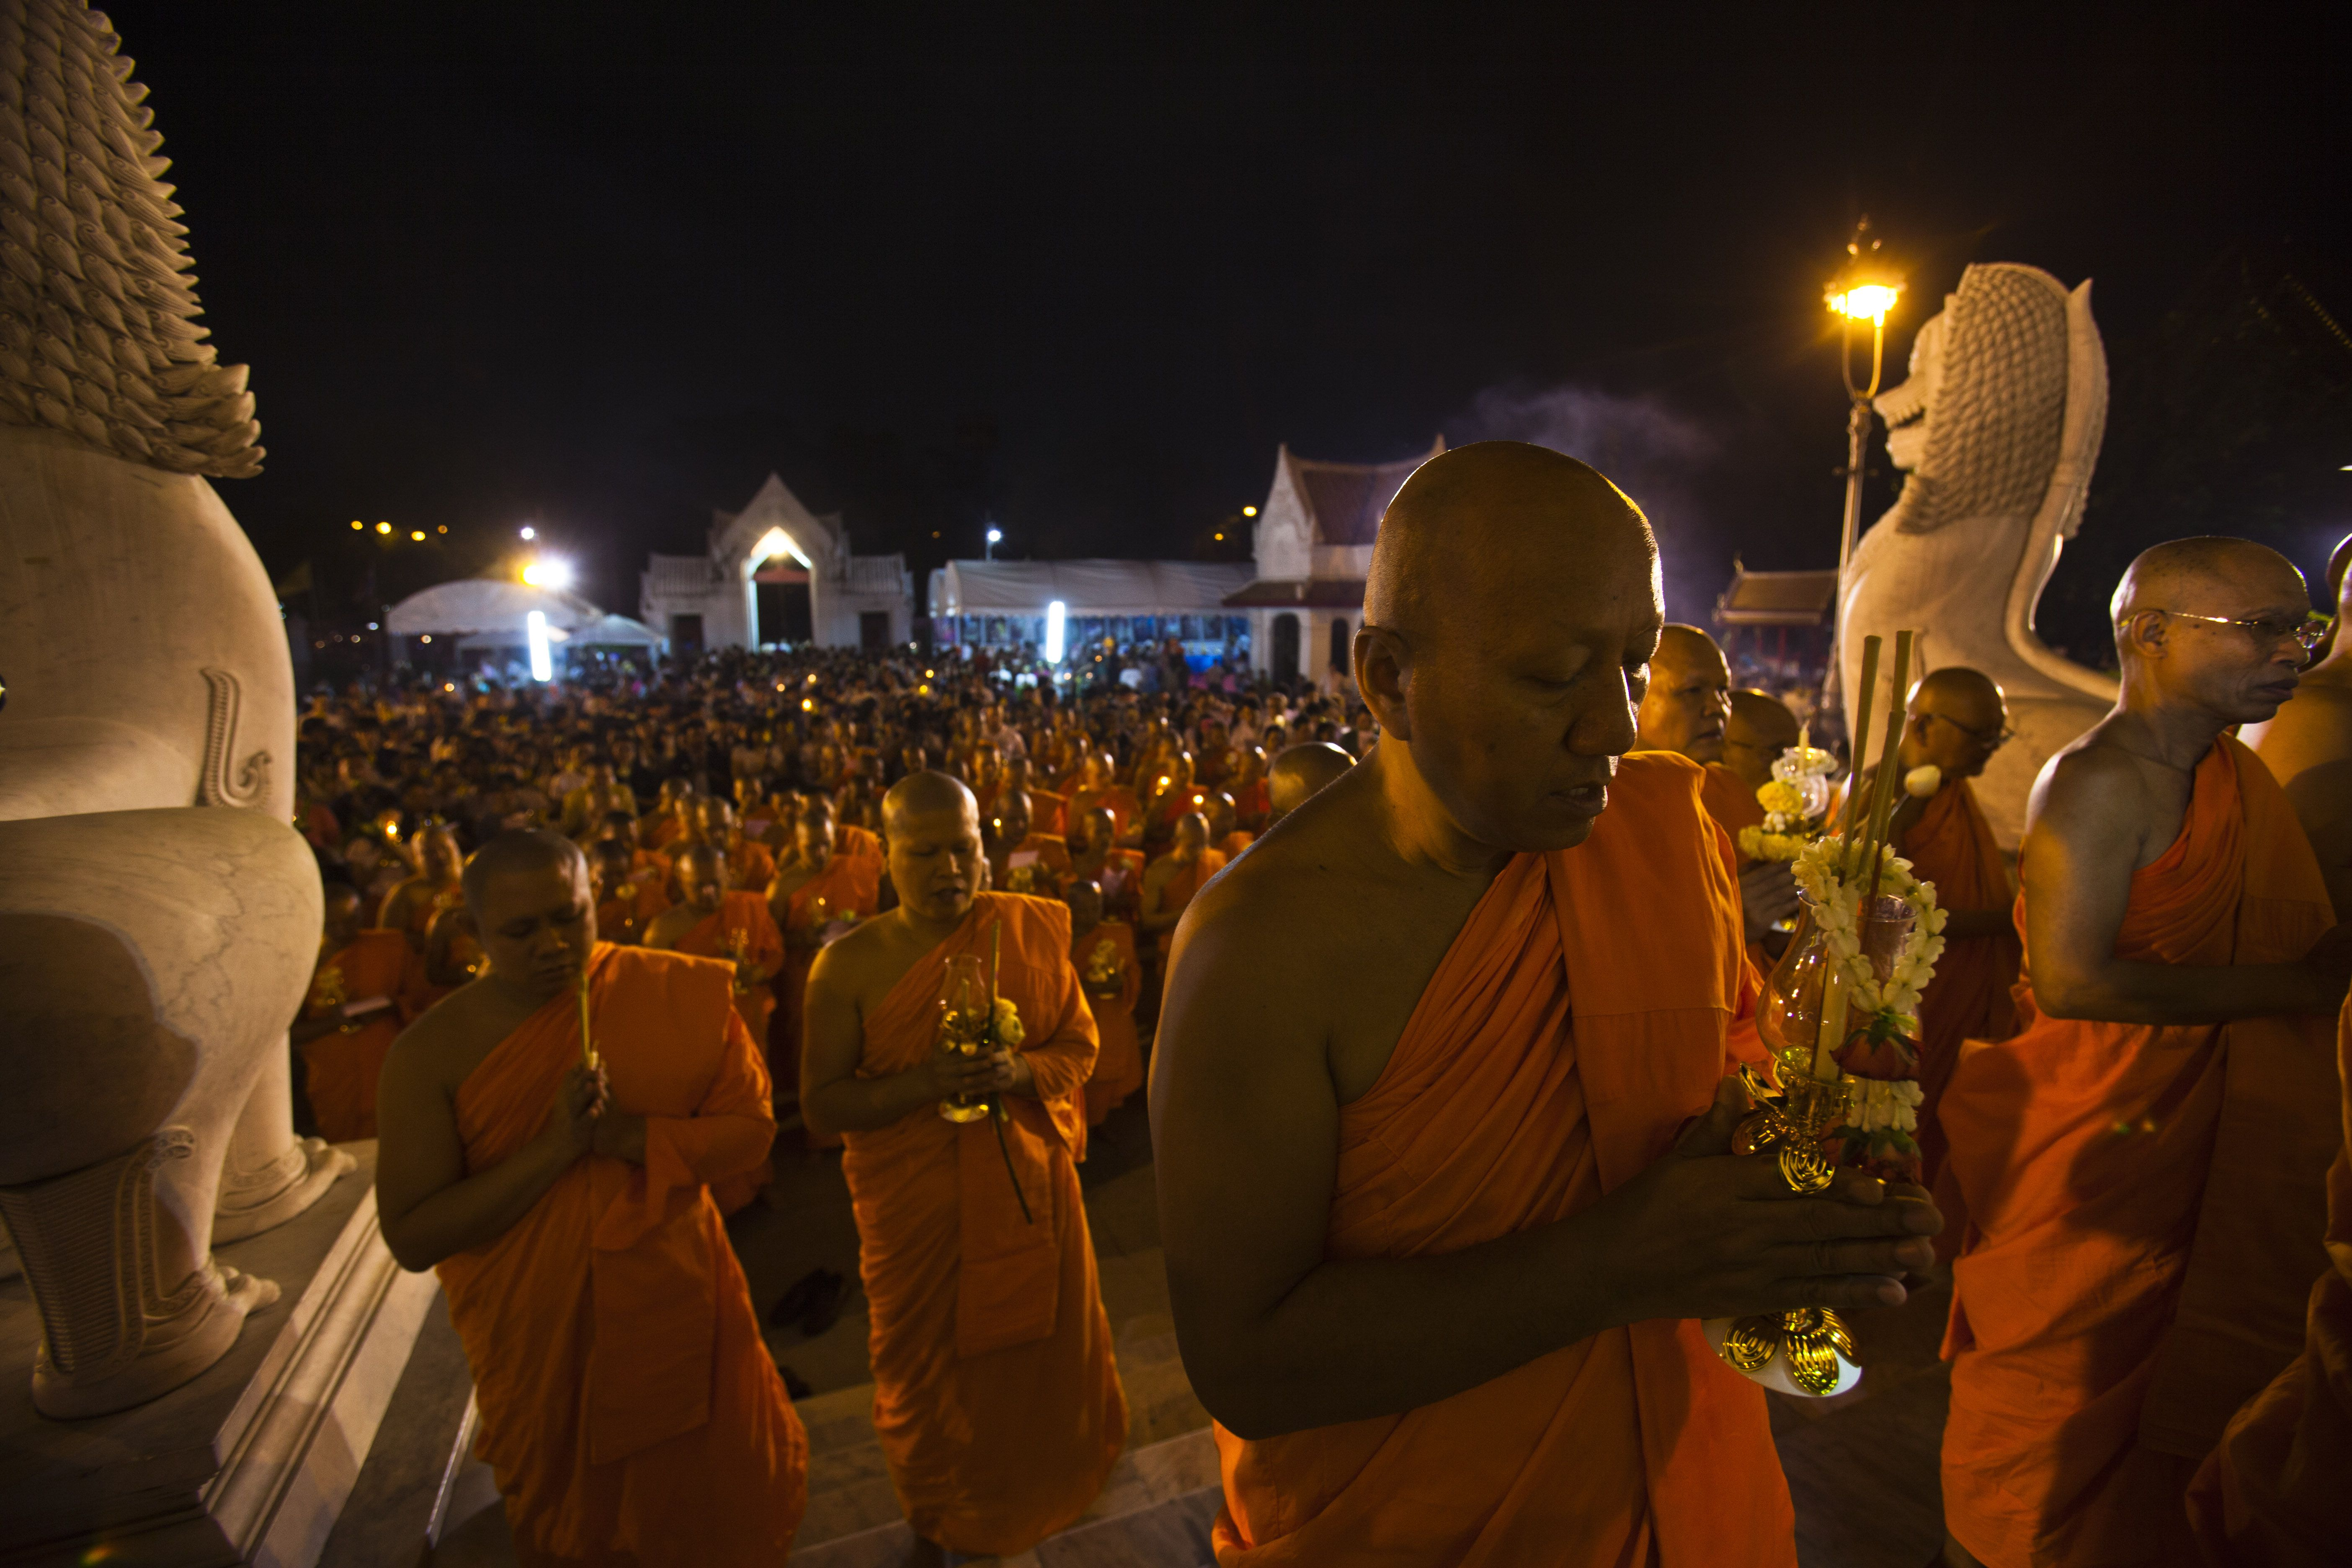 Thai Buddhist monks offer prayers celebrating Magha Puja day at Wat Benchamabophit (Marble Temple) in Bangkok.